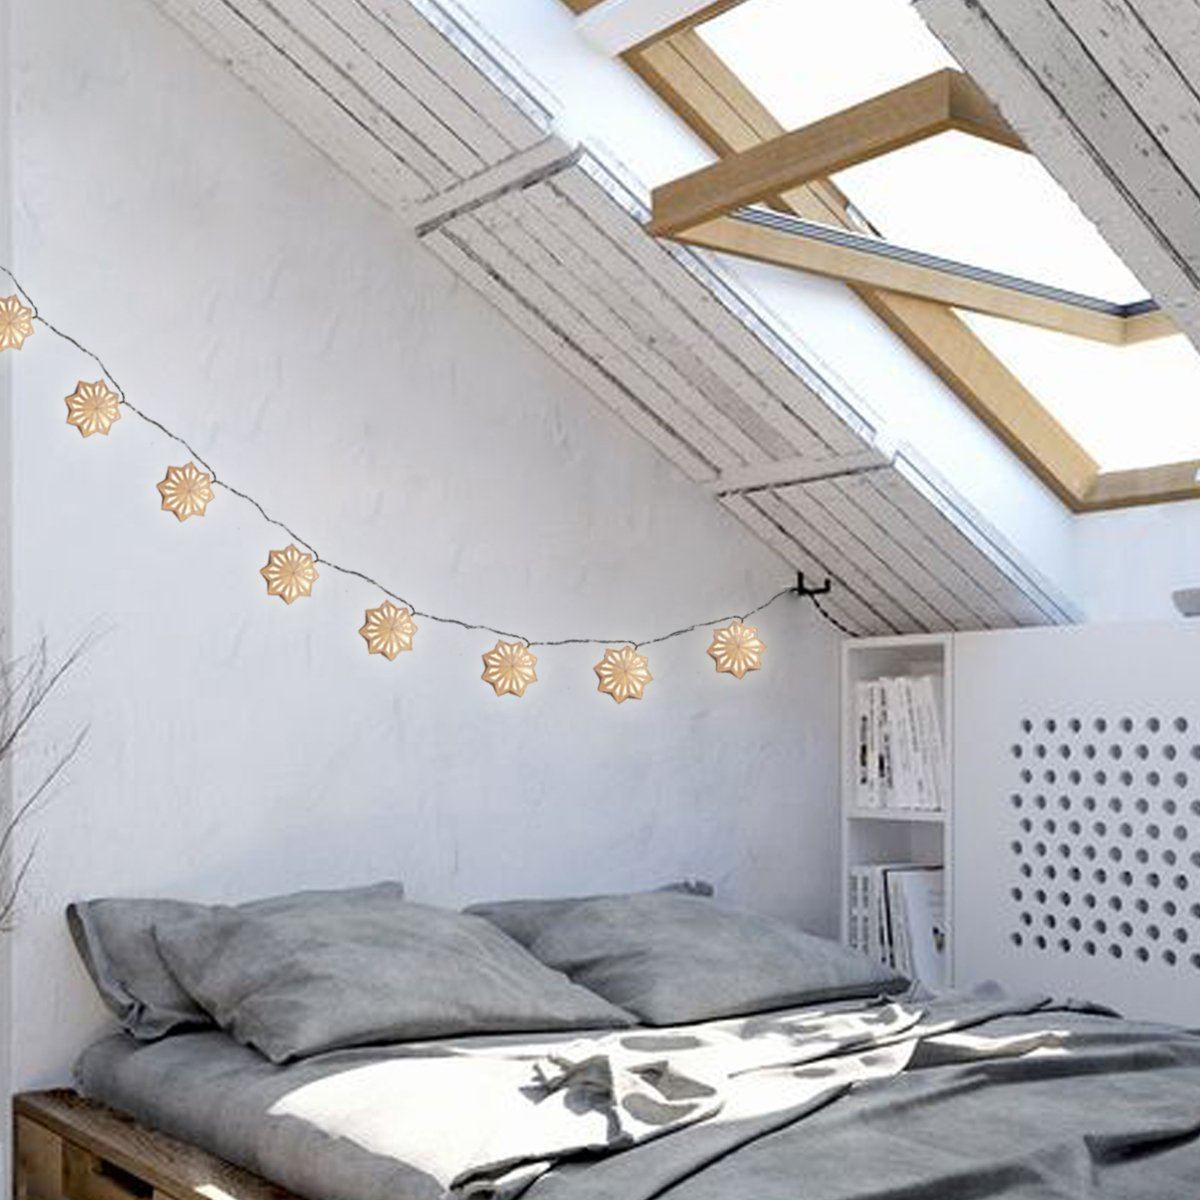 There is no other object that seems to set the decorative without party string lights.  http://www. 29june.com/index.php/stri ng-lights.html &nbsp; …  #party #decoration #29june<br>http://pic.twitter.com/ikKf67ptC4